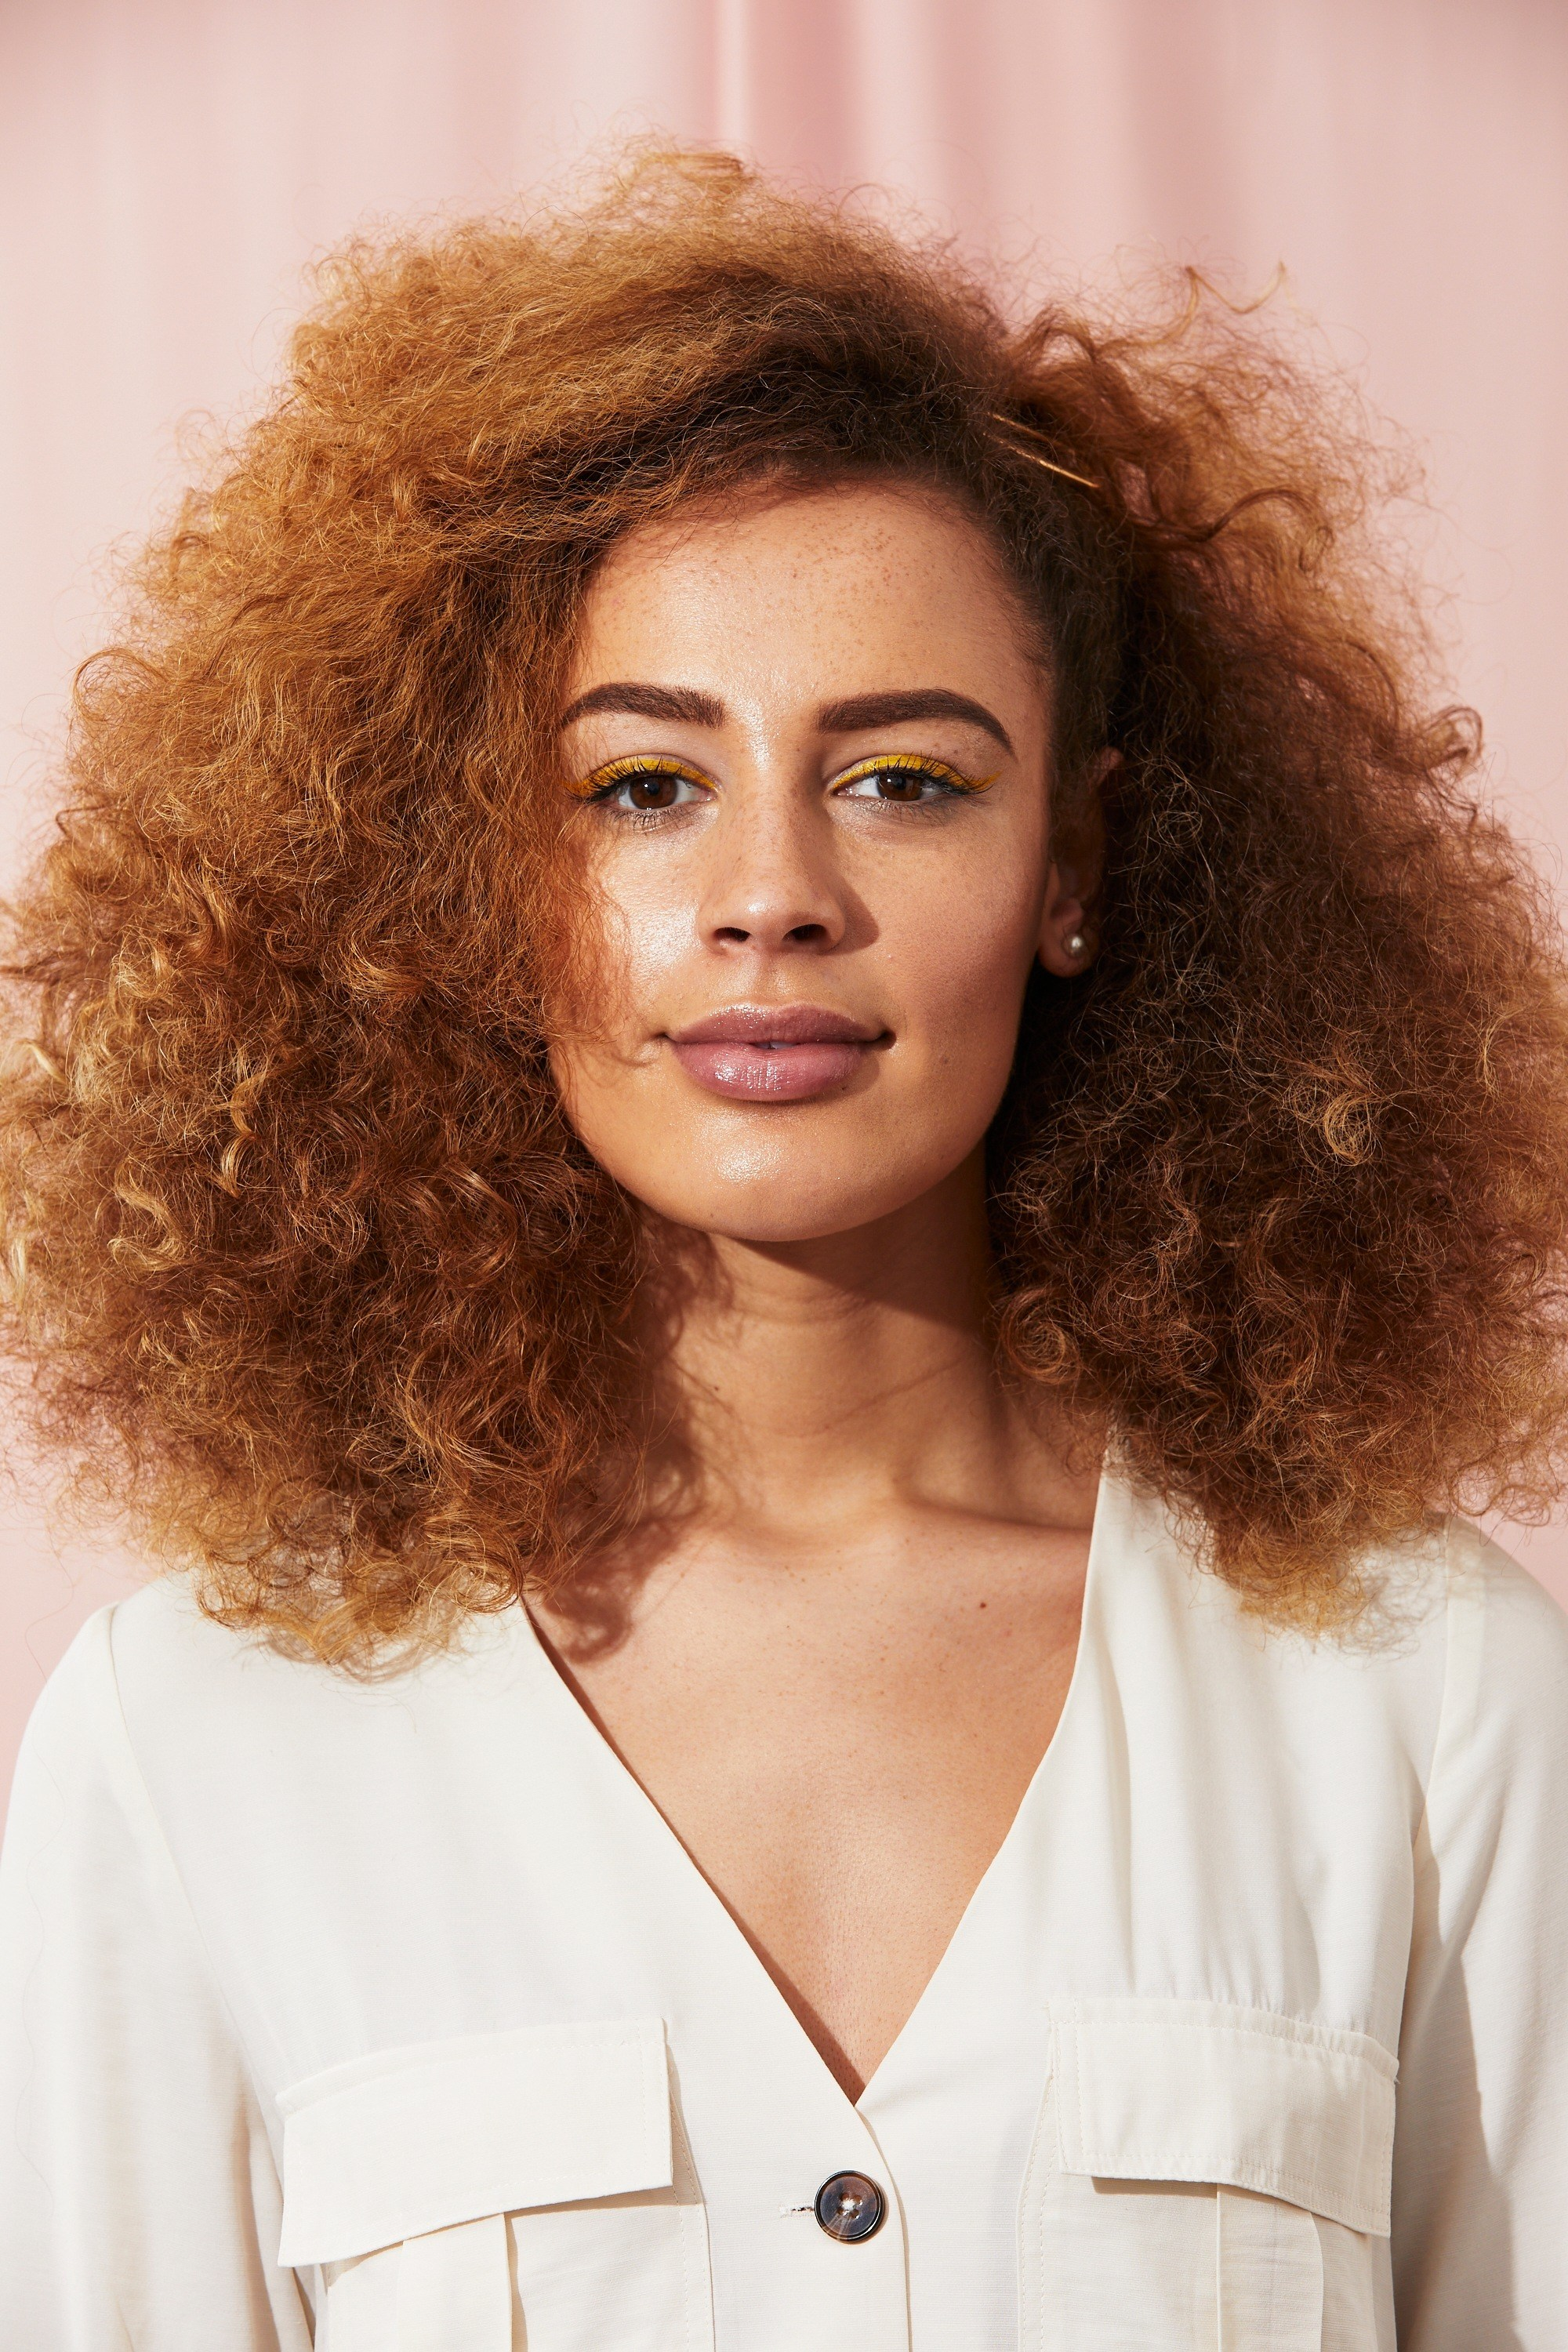 Hairstyles for Frizzy Hair: Embrace Your Texture  All Things Hair US